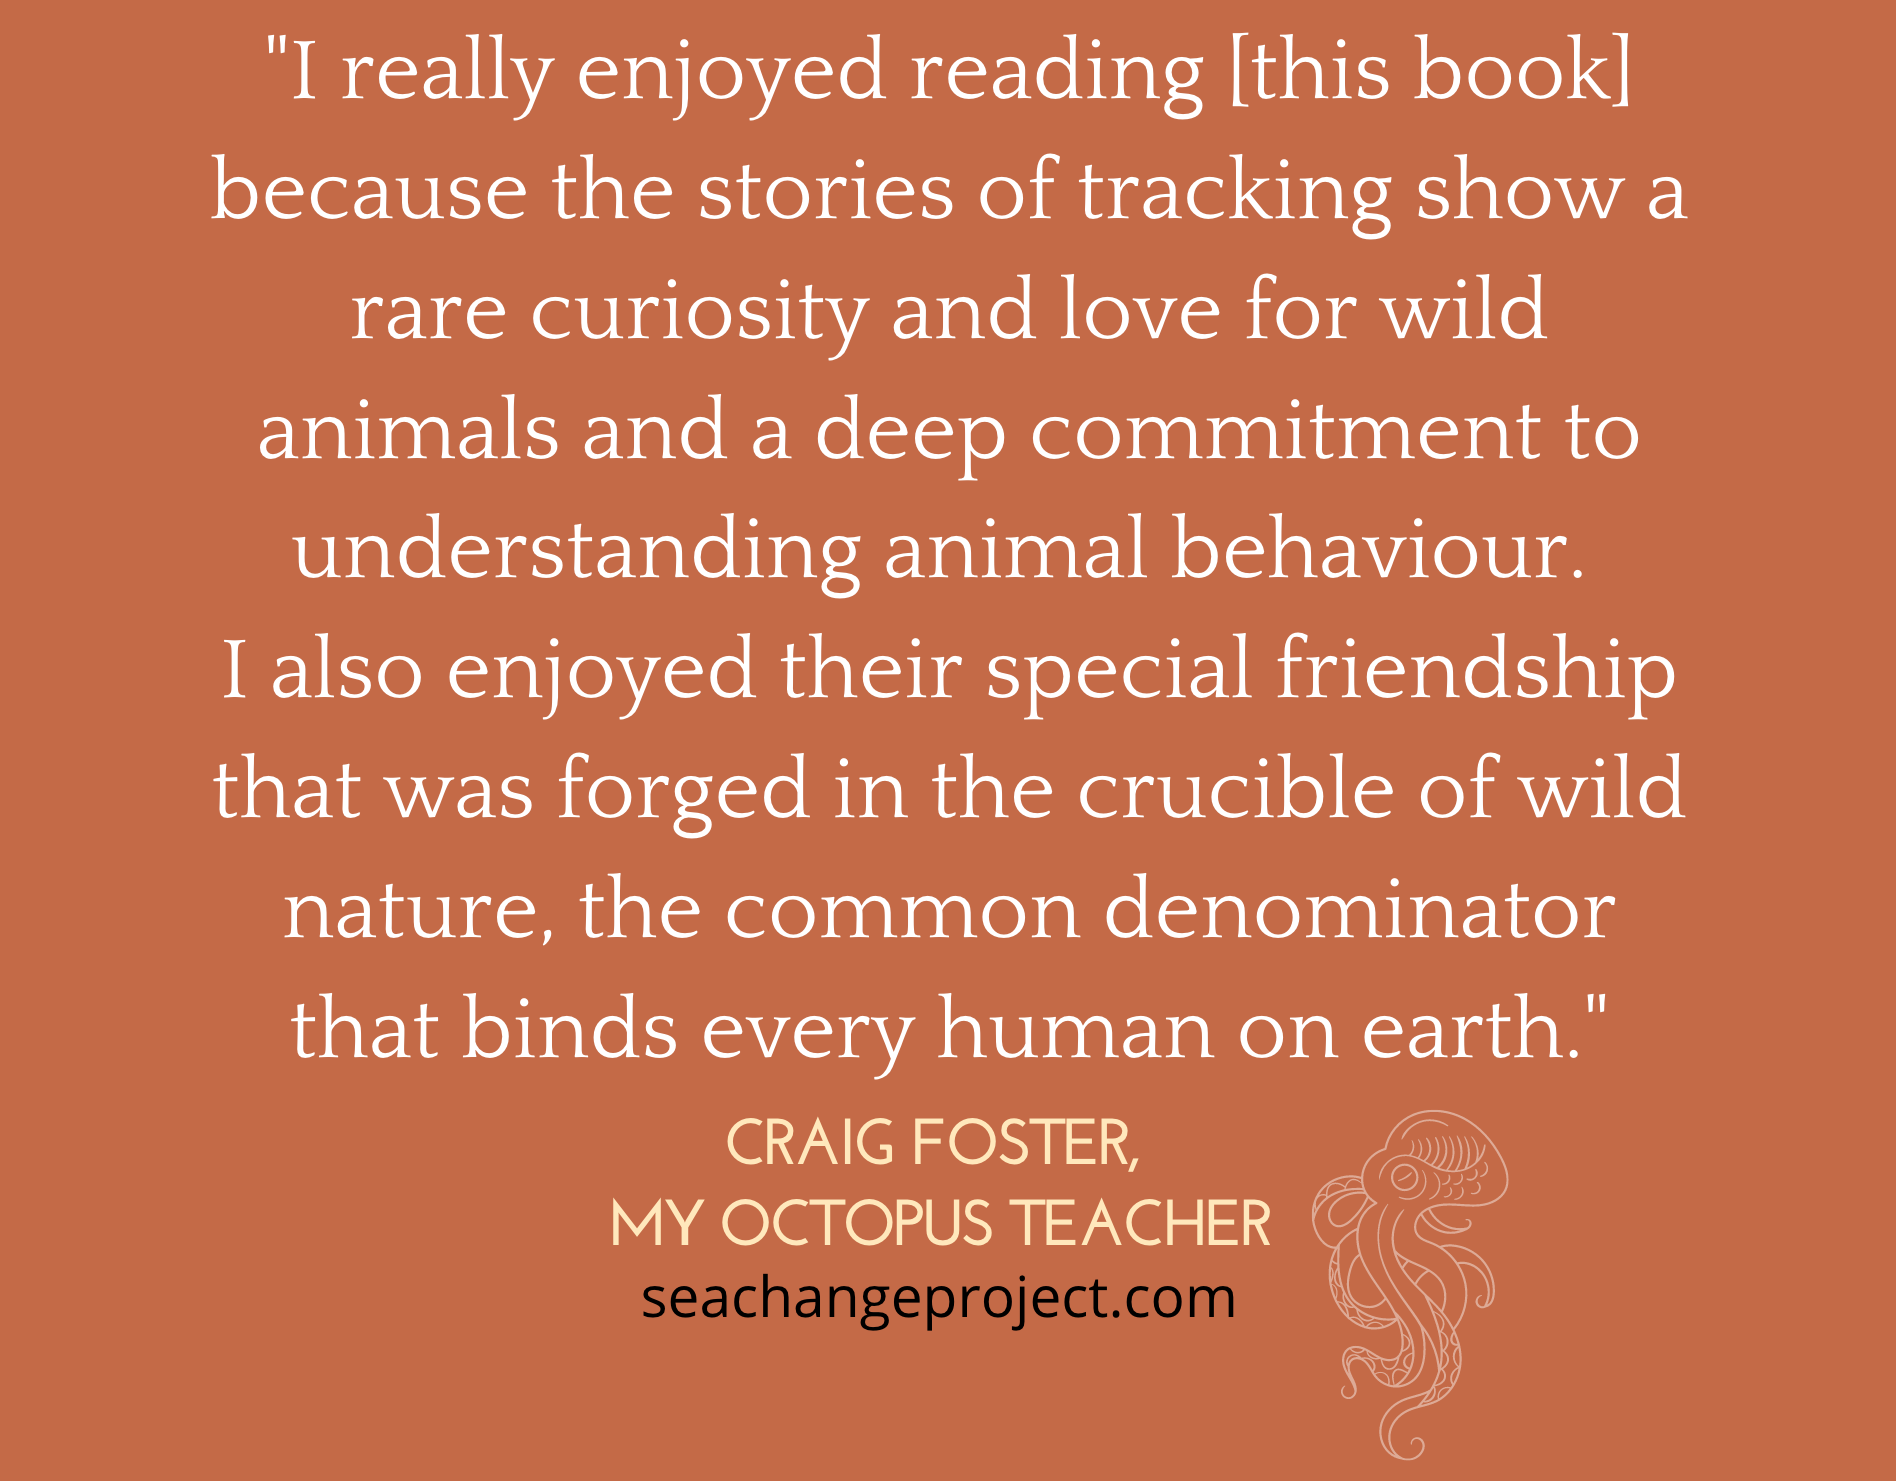 """Quote: """"I really enjoyed reading this book because the stories of tracking show a rare curiosity and love for the wild animals and a deep commitment to understanding animal behaviour"""" By Craig Foster - My Octopus Teacher"""